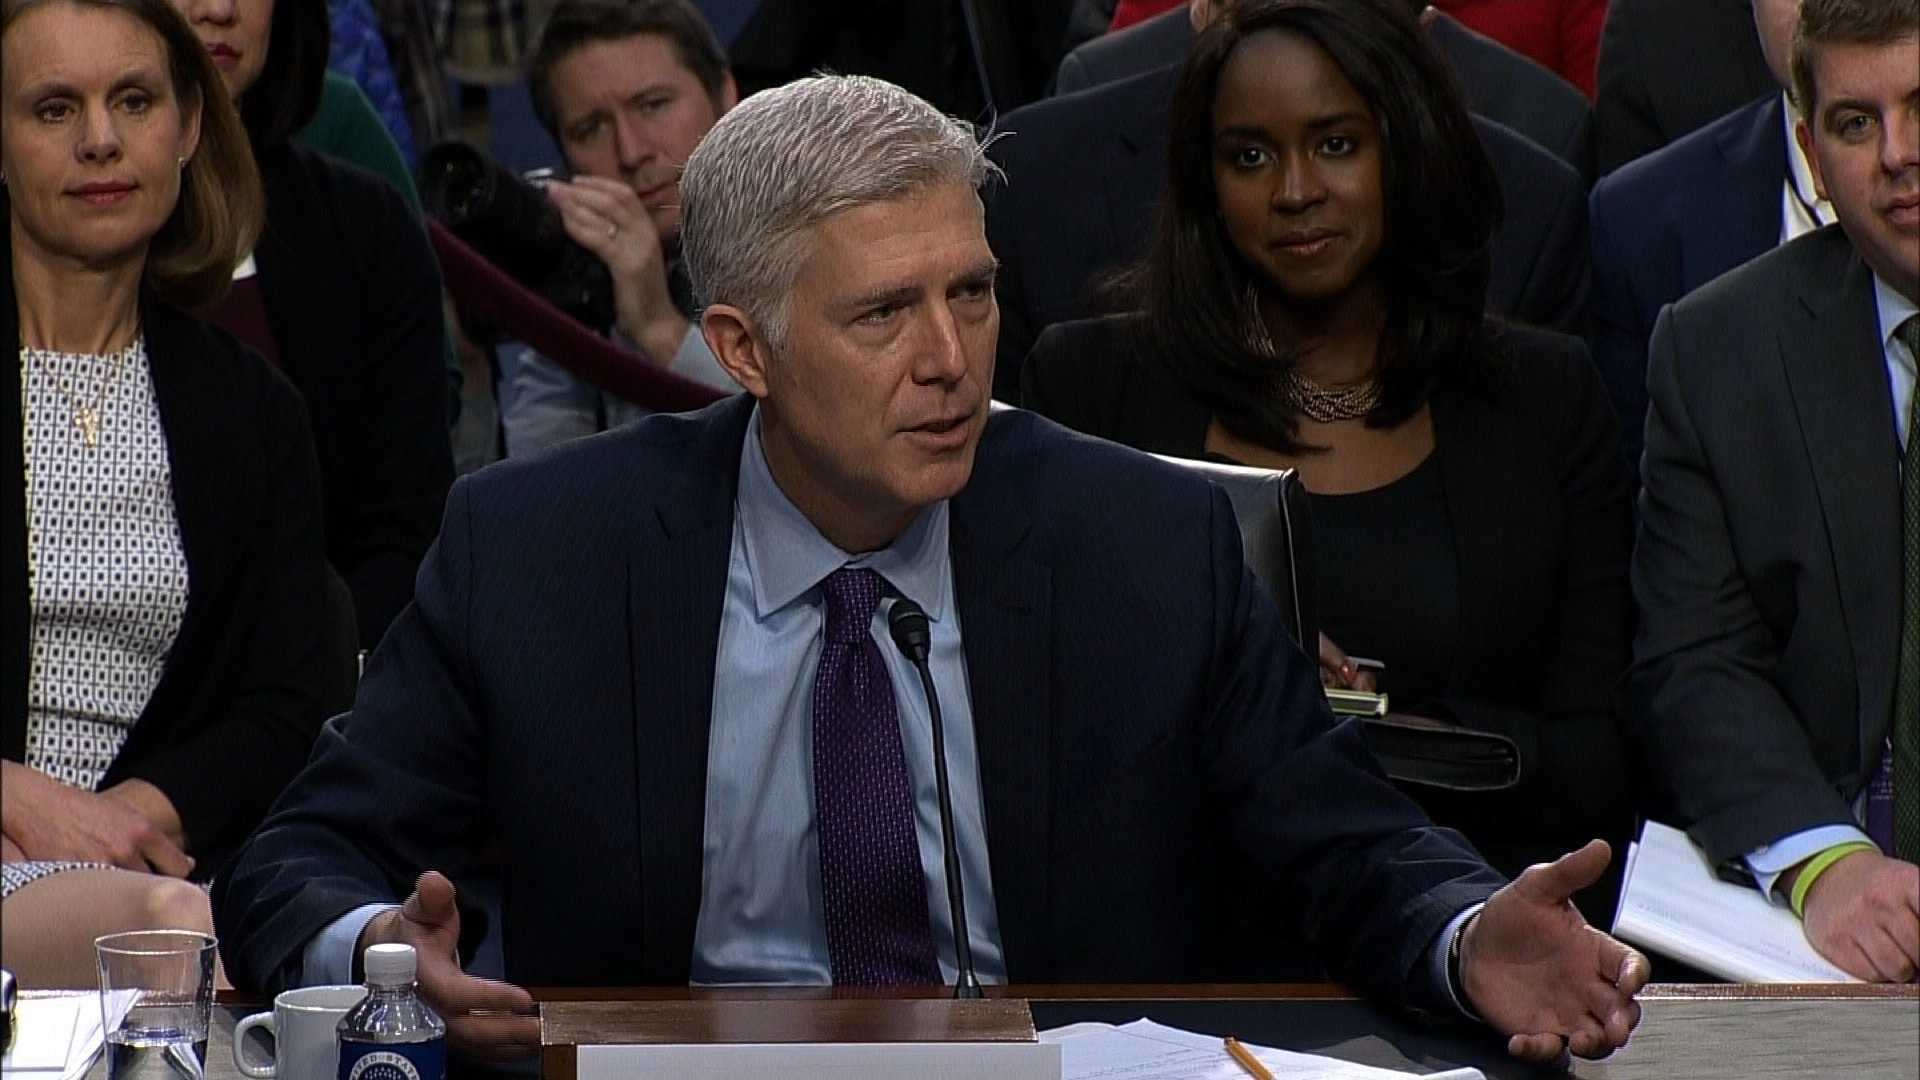 Neil Gorsuch is seen here being questioned in the Senate Judiciary Committee on March 21, 2017.